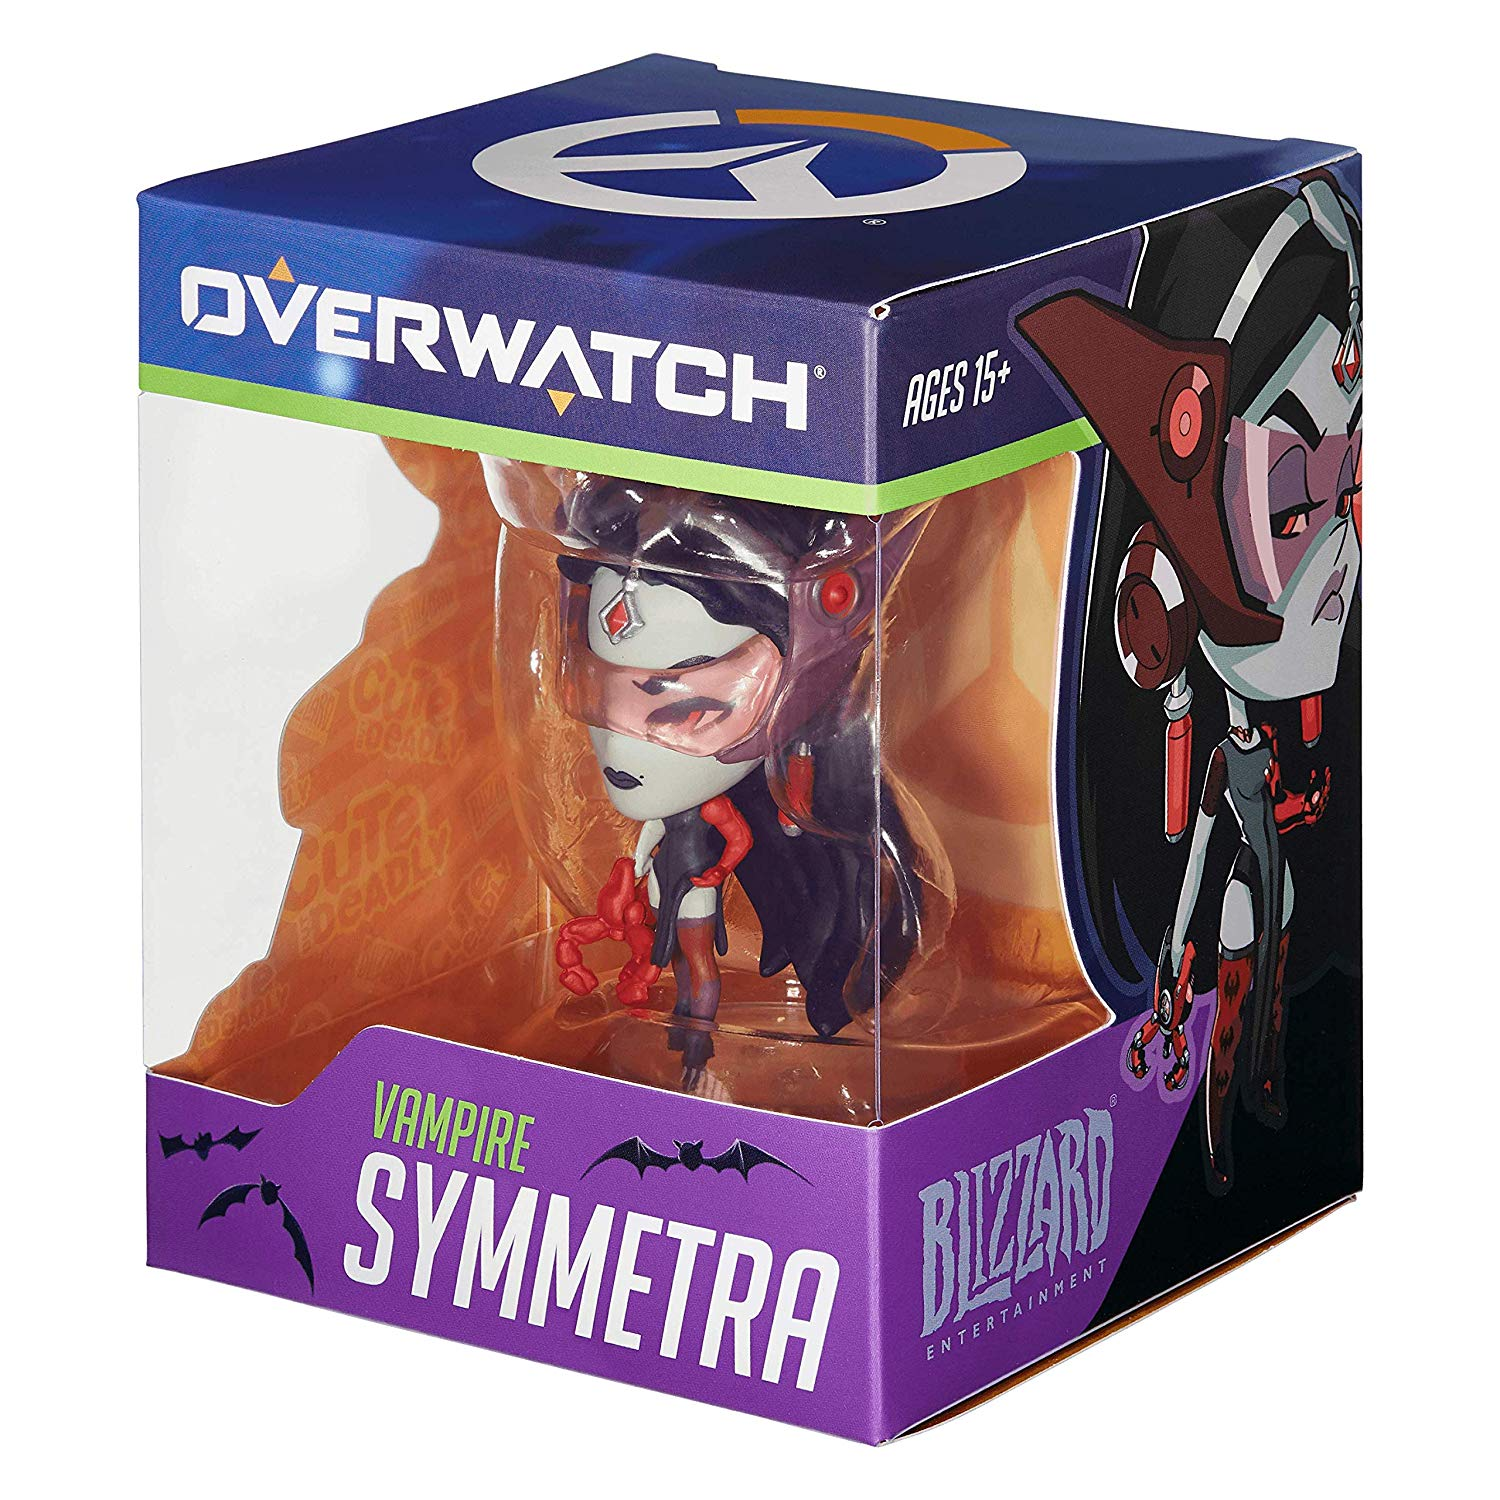 Official Blizzard Overwatch Cute But Deadly Vampire Symmetra